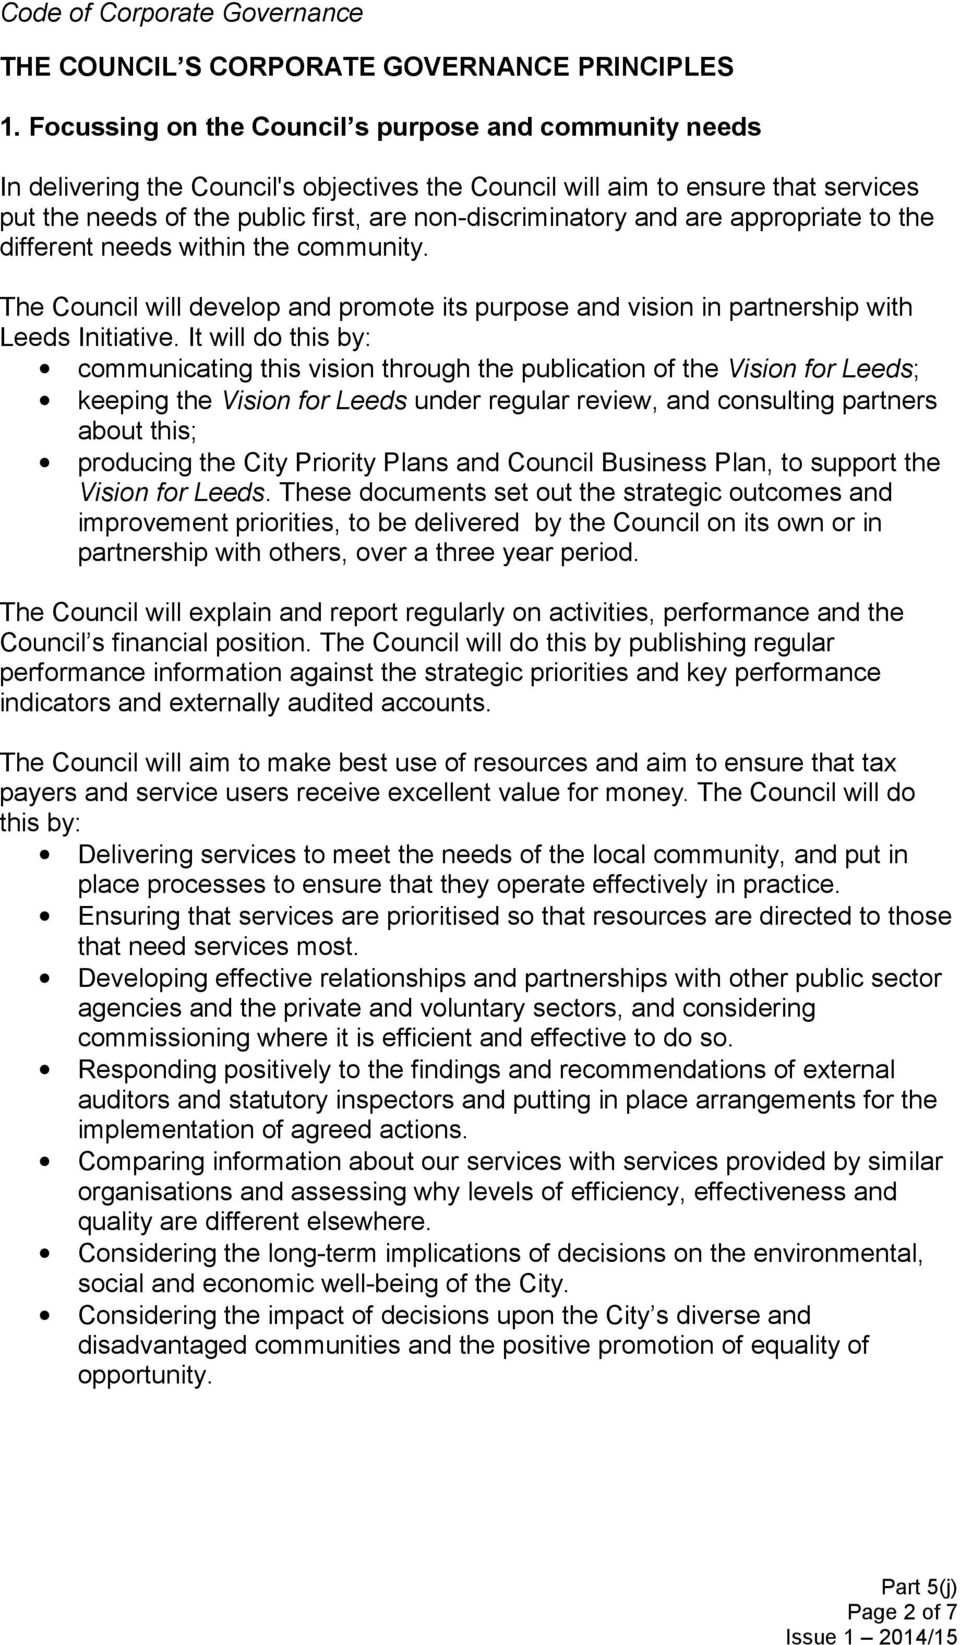 and are appropriate to the different needs within the community. The Council will develop and promote its purpose and vision in partnership with Leeds Initiative.